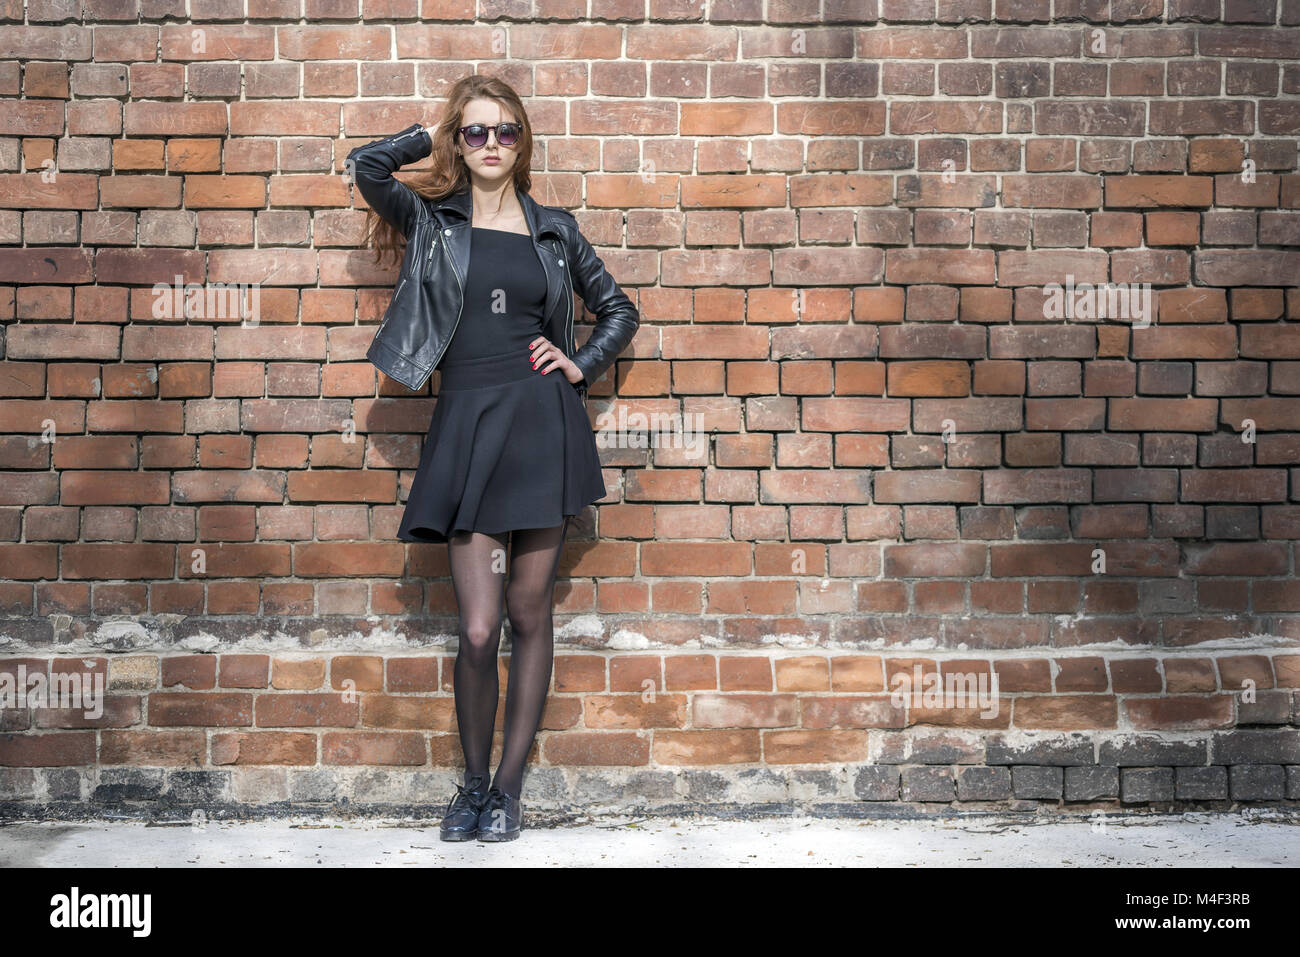 Girl with long hair near an old brick wall - Stock Image